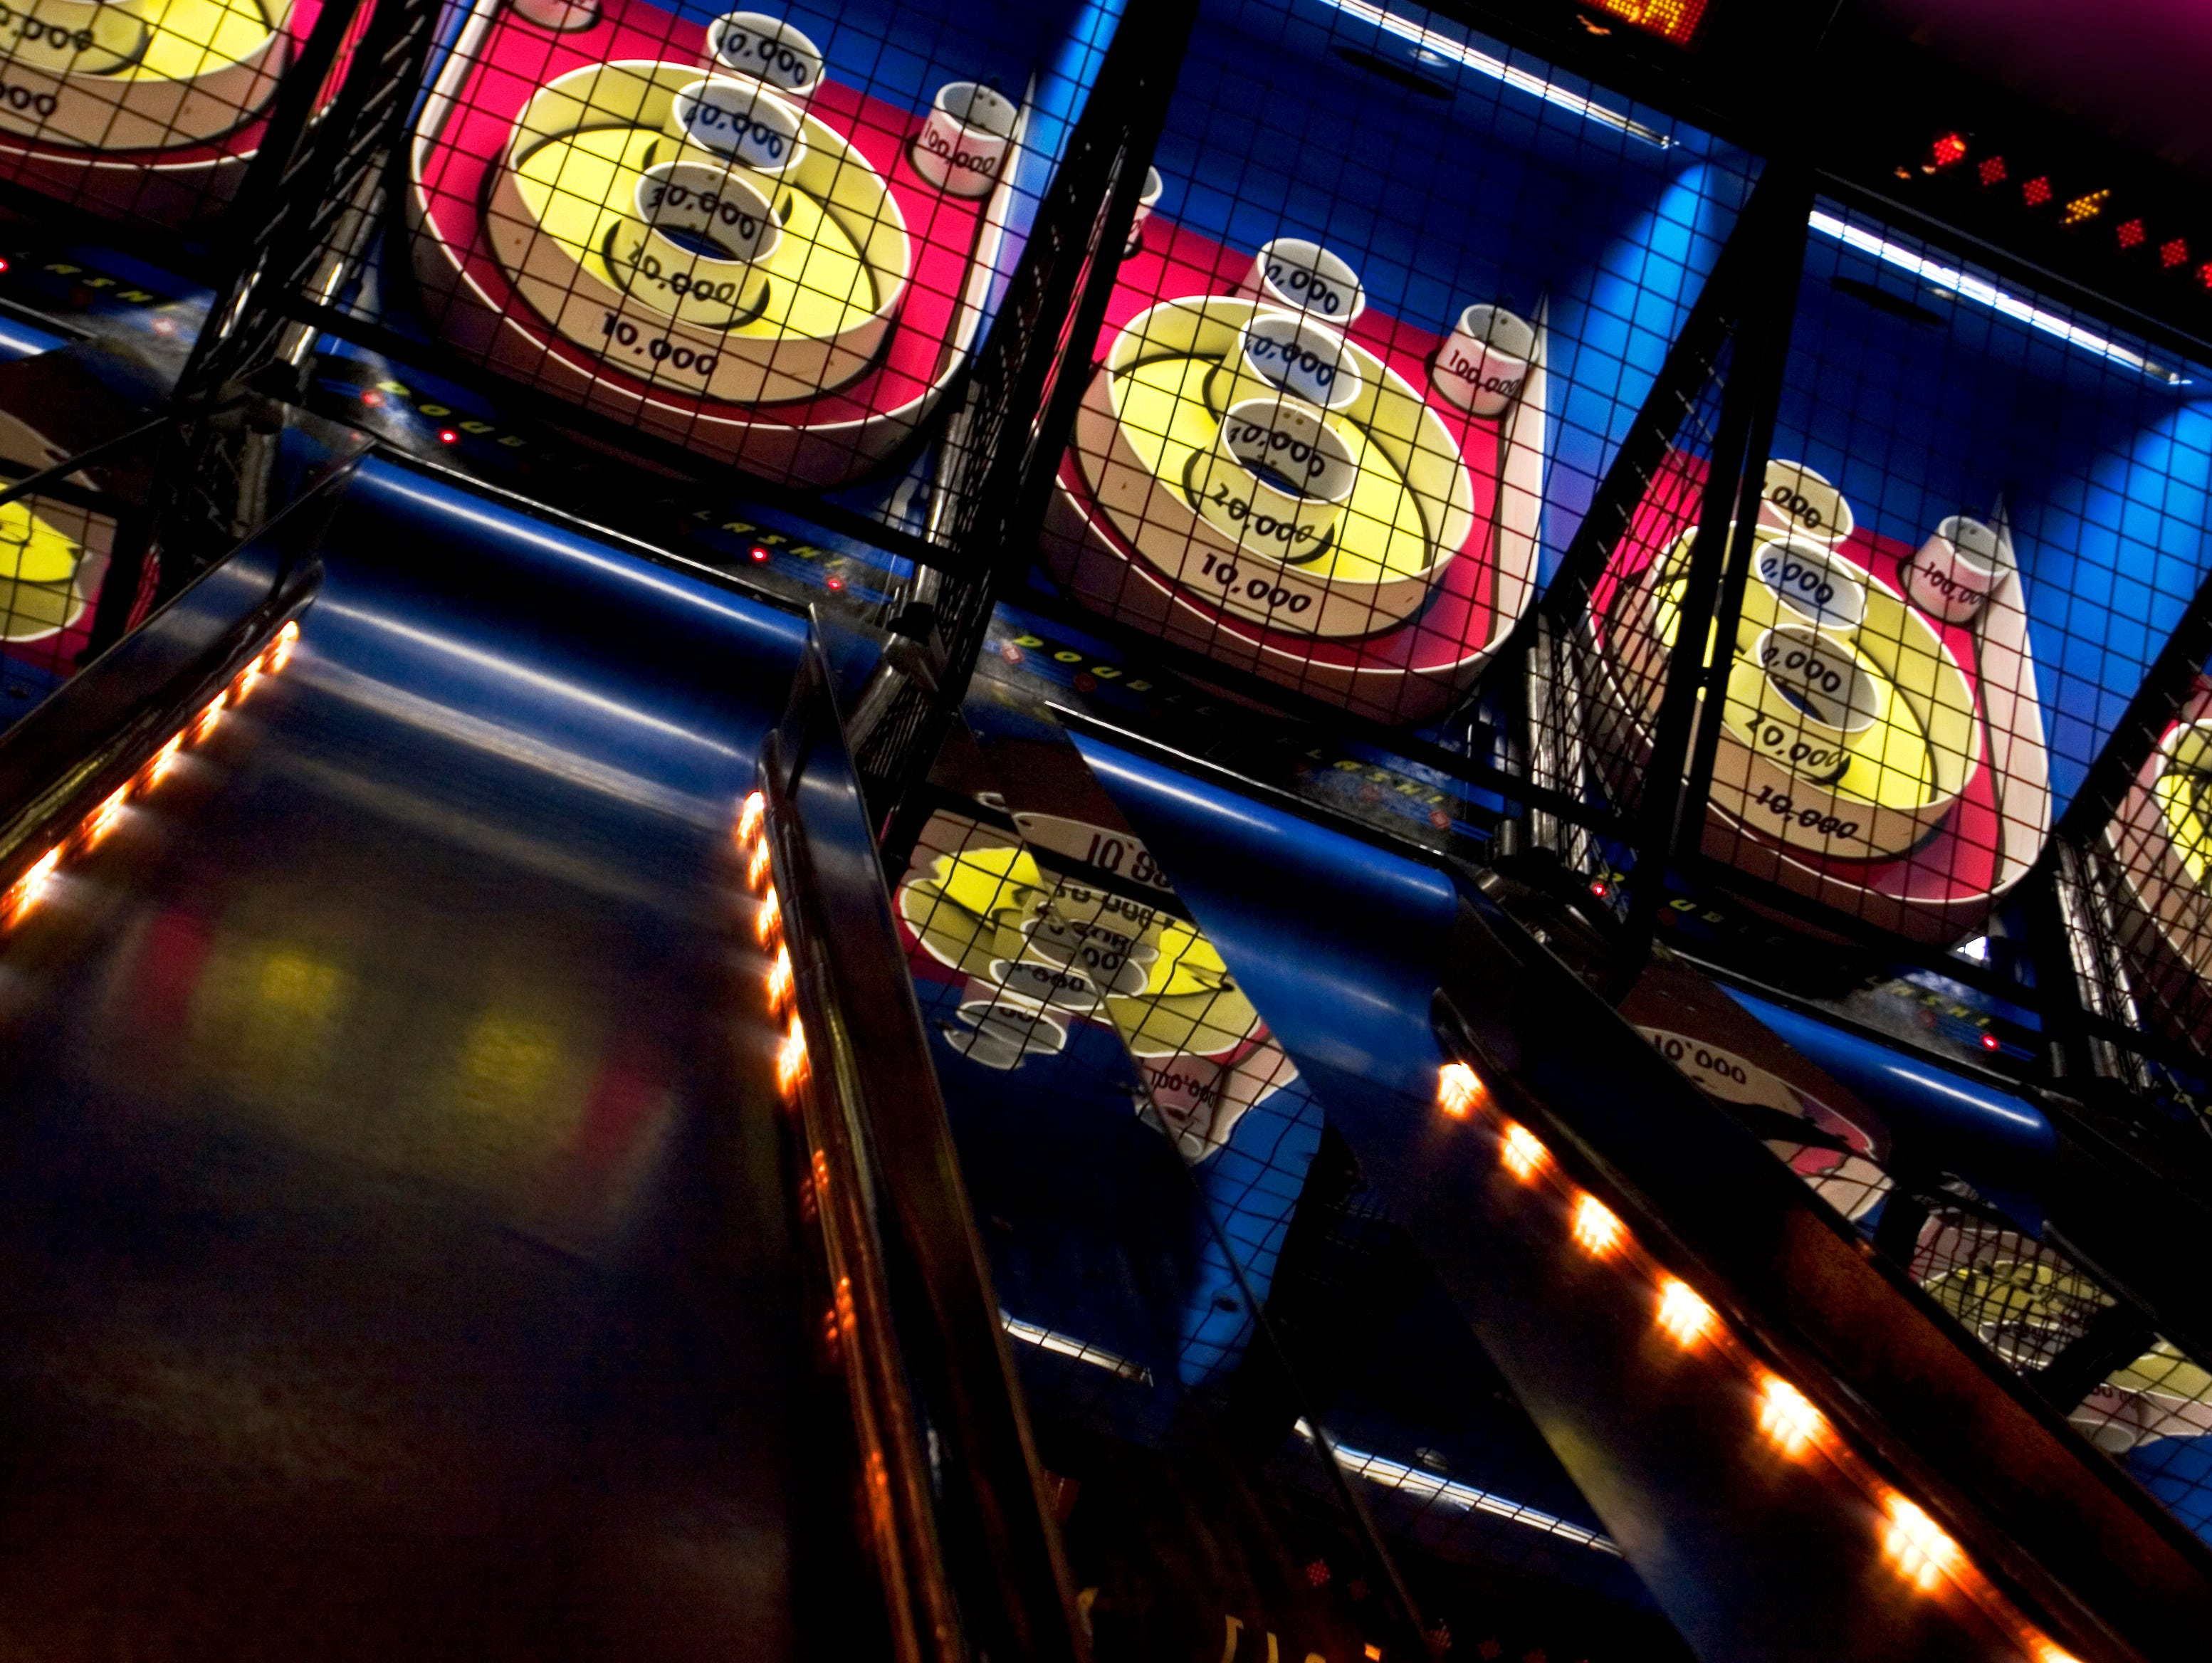 Buy a $10 Gameworks Game Card and get a $10 Game Card FREE.